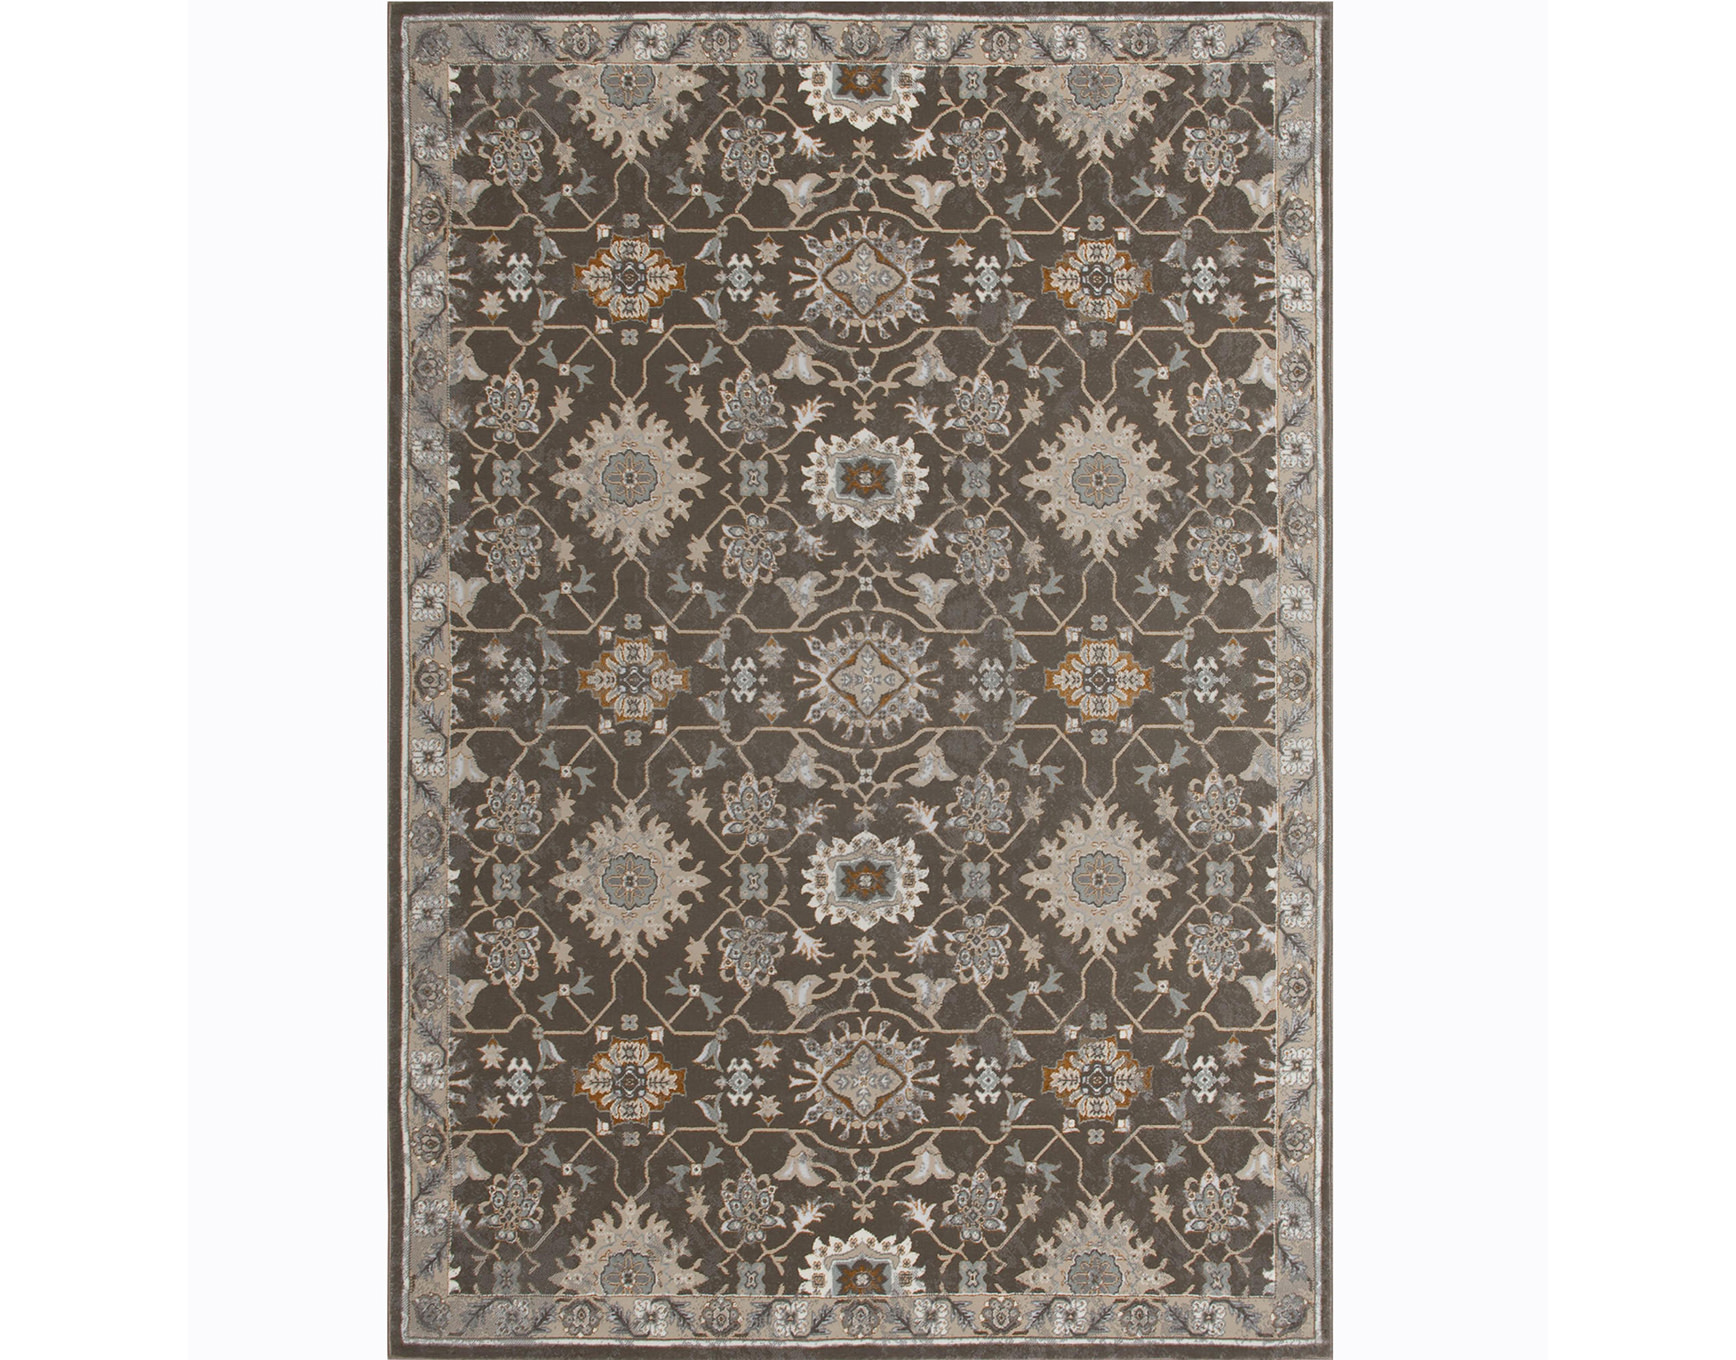 designs piece walmart rug sets set of ideas area awesome